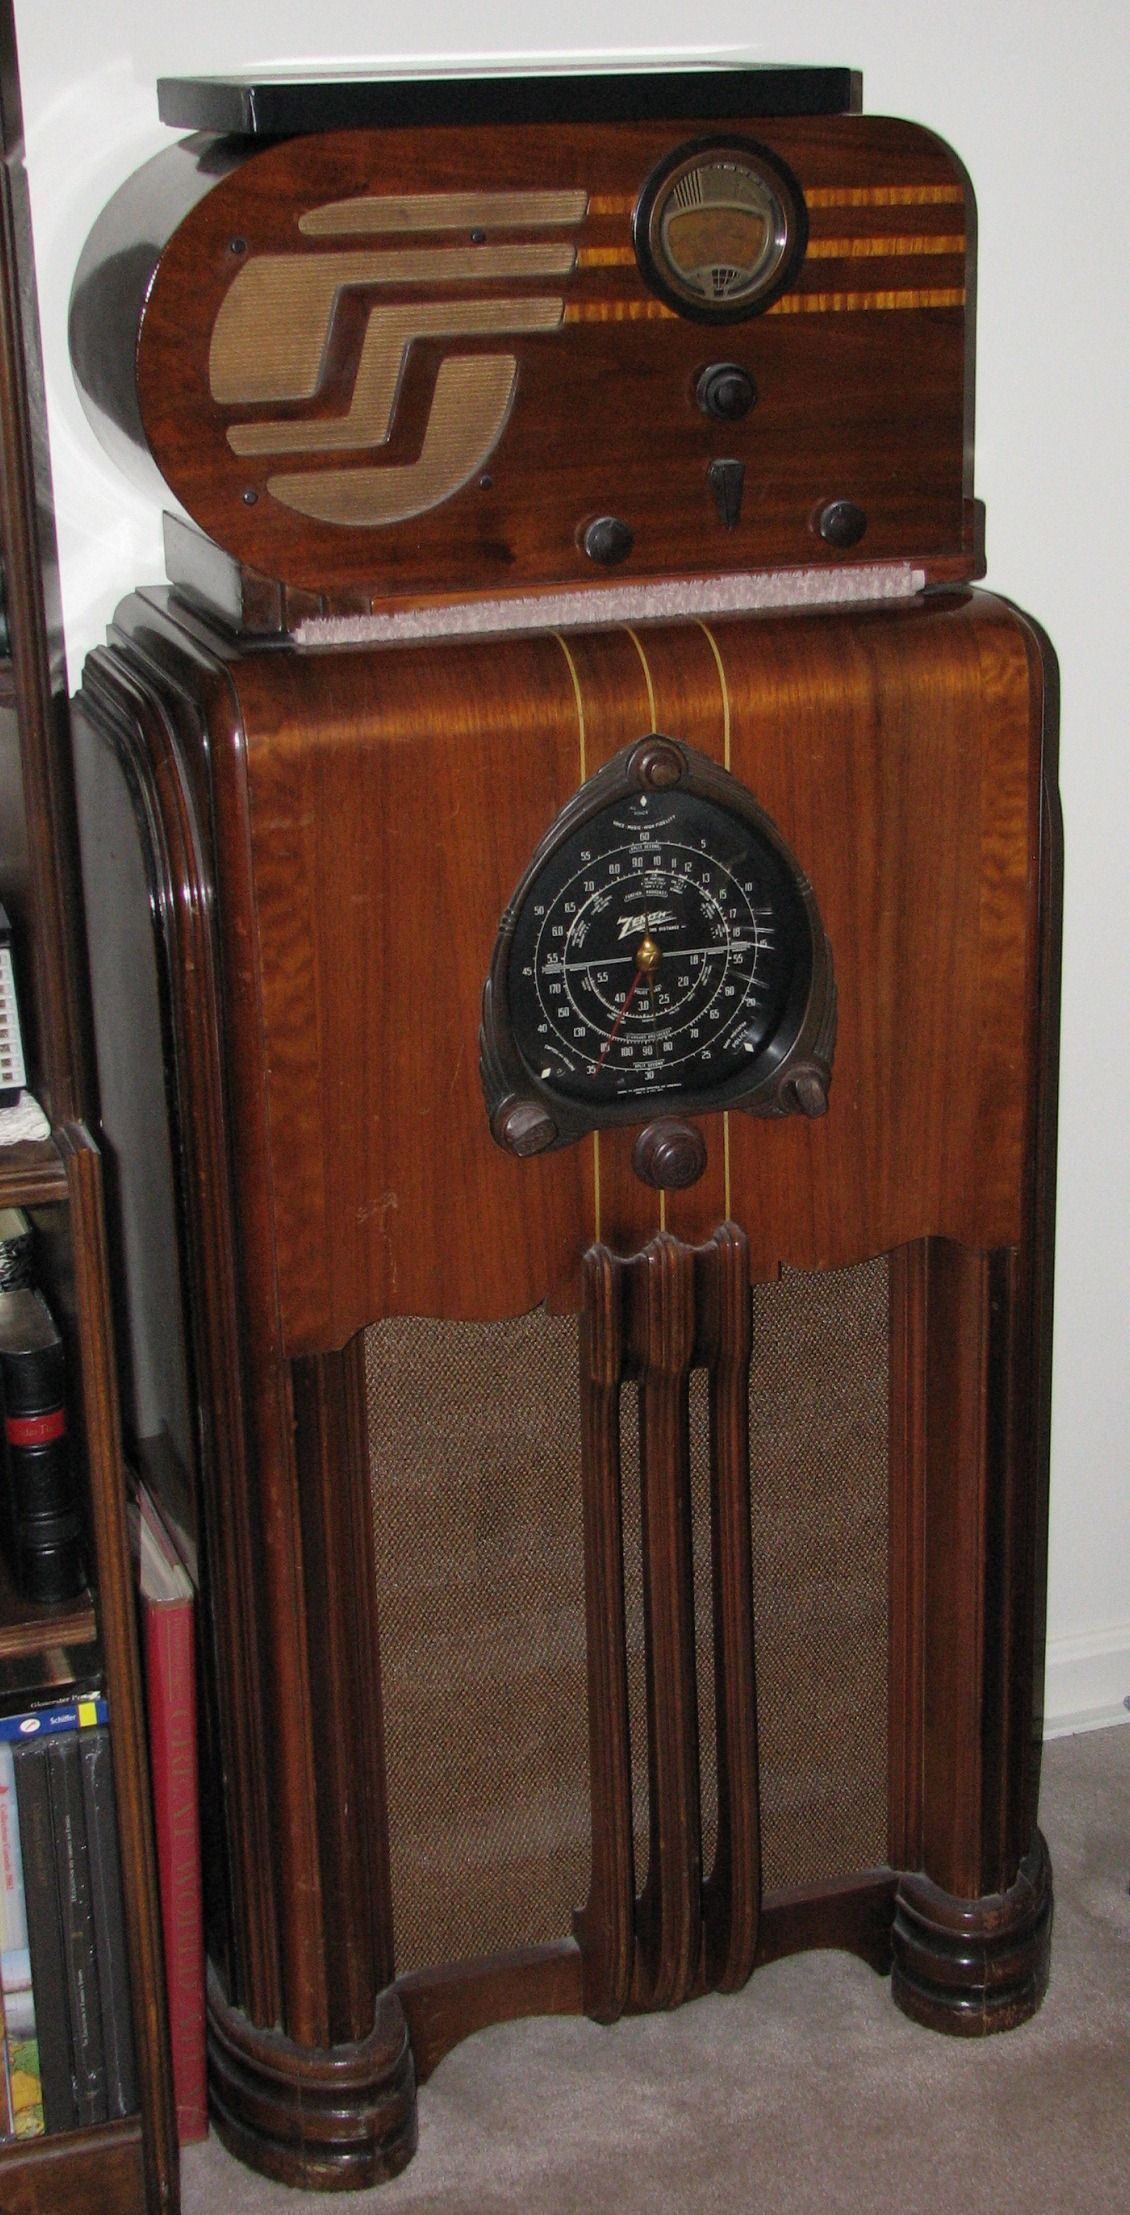 A Beautiful Big Black Dial Zenith Console Radio With An